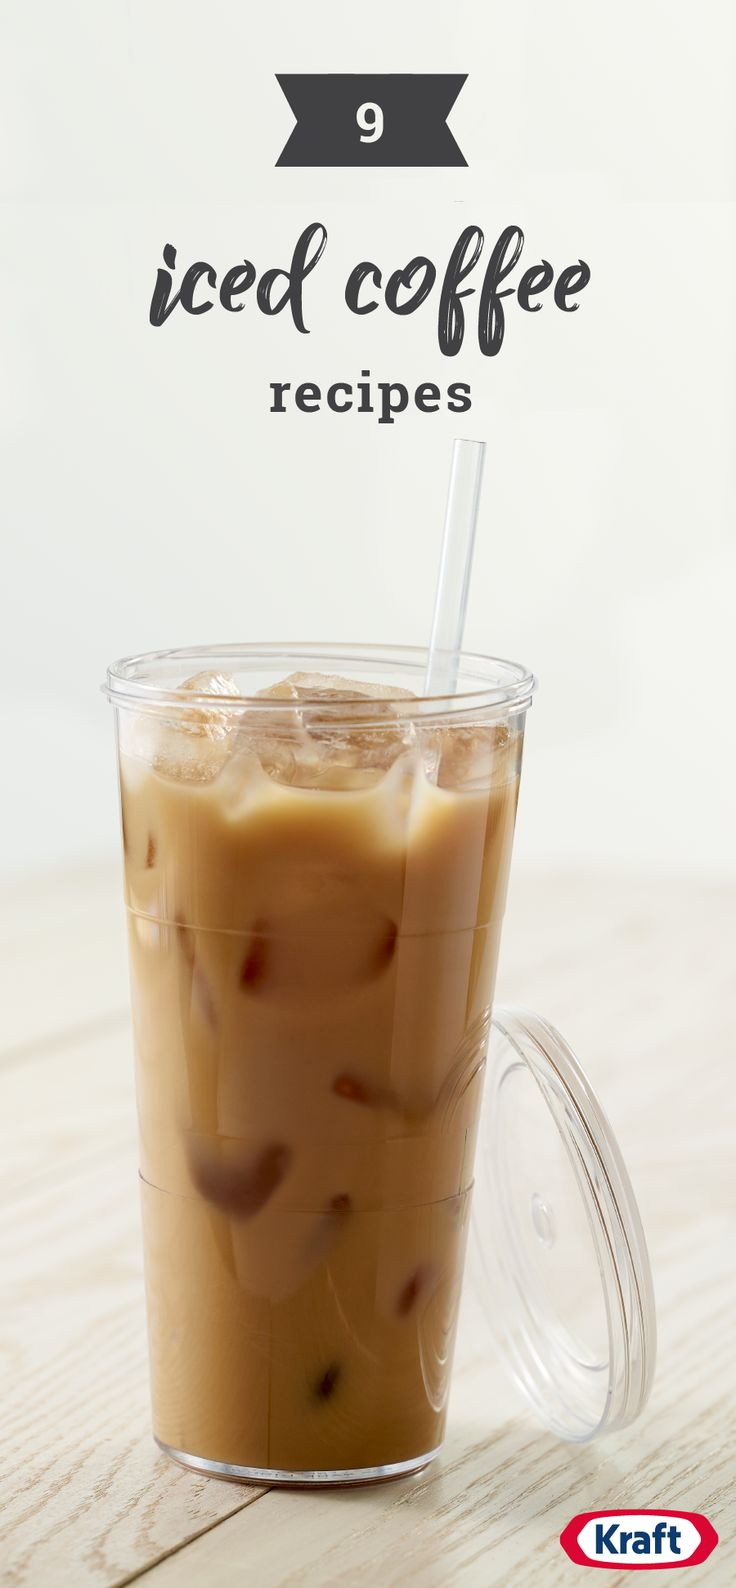 9 Iced Coffee Recipes – No matter the time of year, waking up and enjoying a refreshing iced coffee drink is always a wonderful way to start your day! This collection of drinks are sure to be your favorite pair to breakfast.